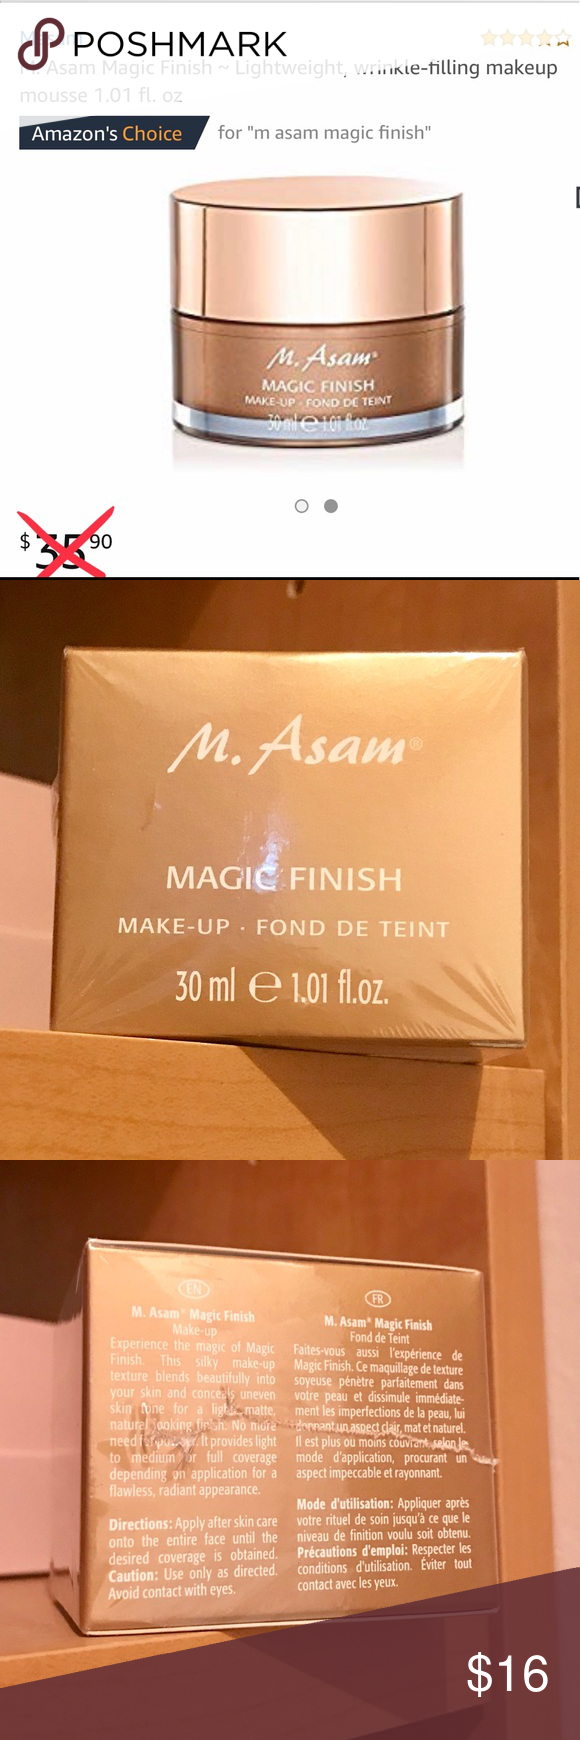 Magic Finish Makeup Best Seller Magic Finish Makeup By M Asam Lightweight Full Coverage Silky Smooth Texture Covers All Those Im Makeup Foundation Skin Brightening Skin Care Treatments